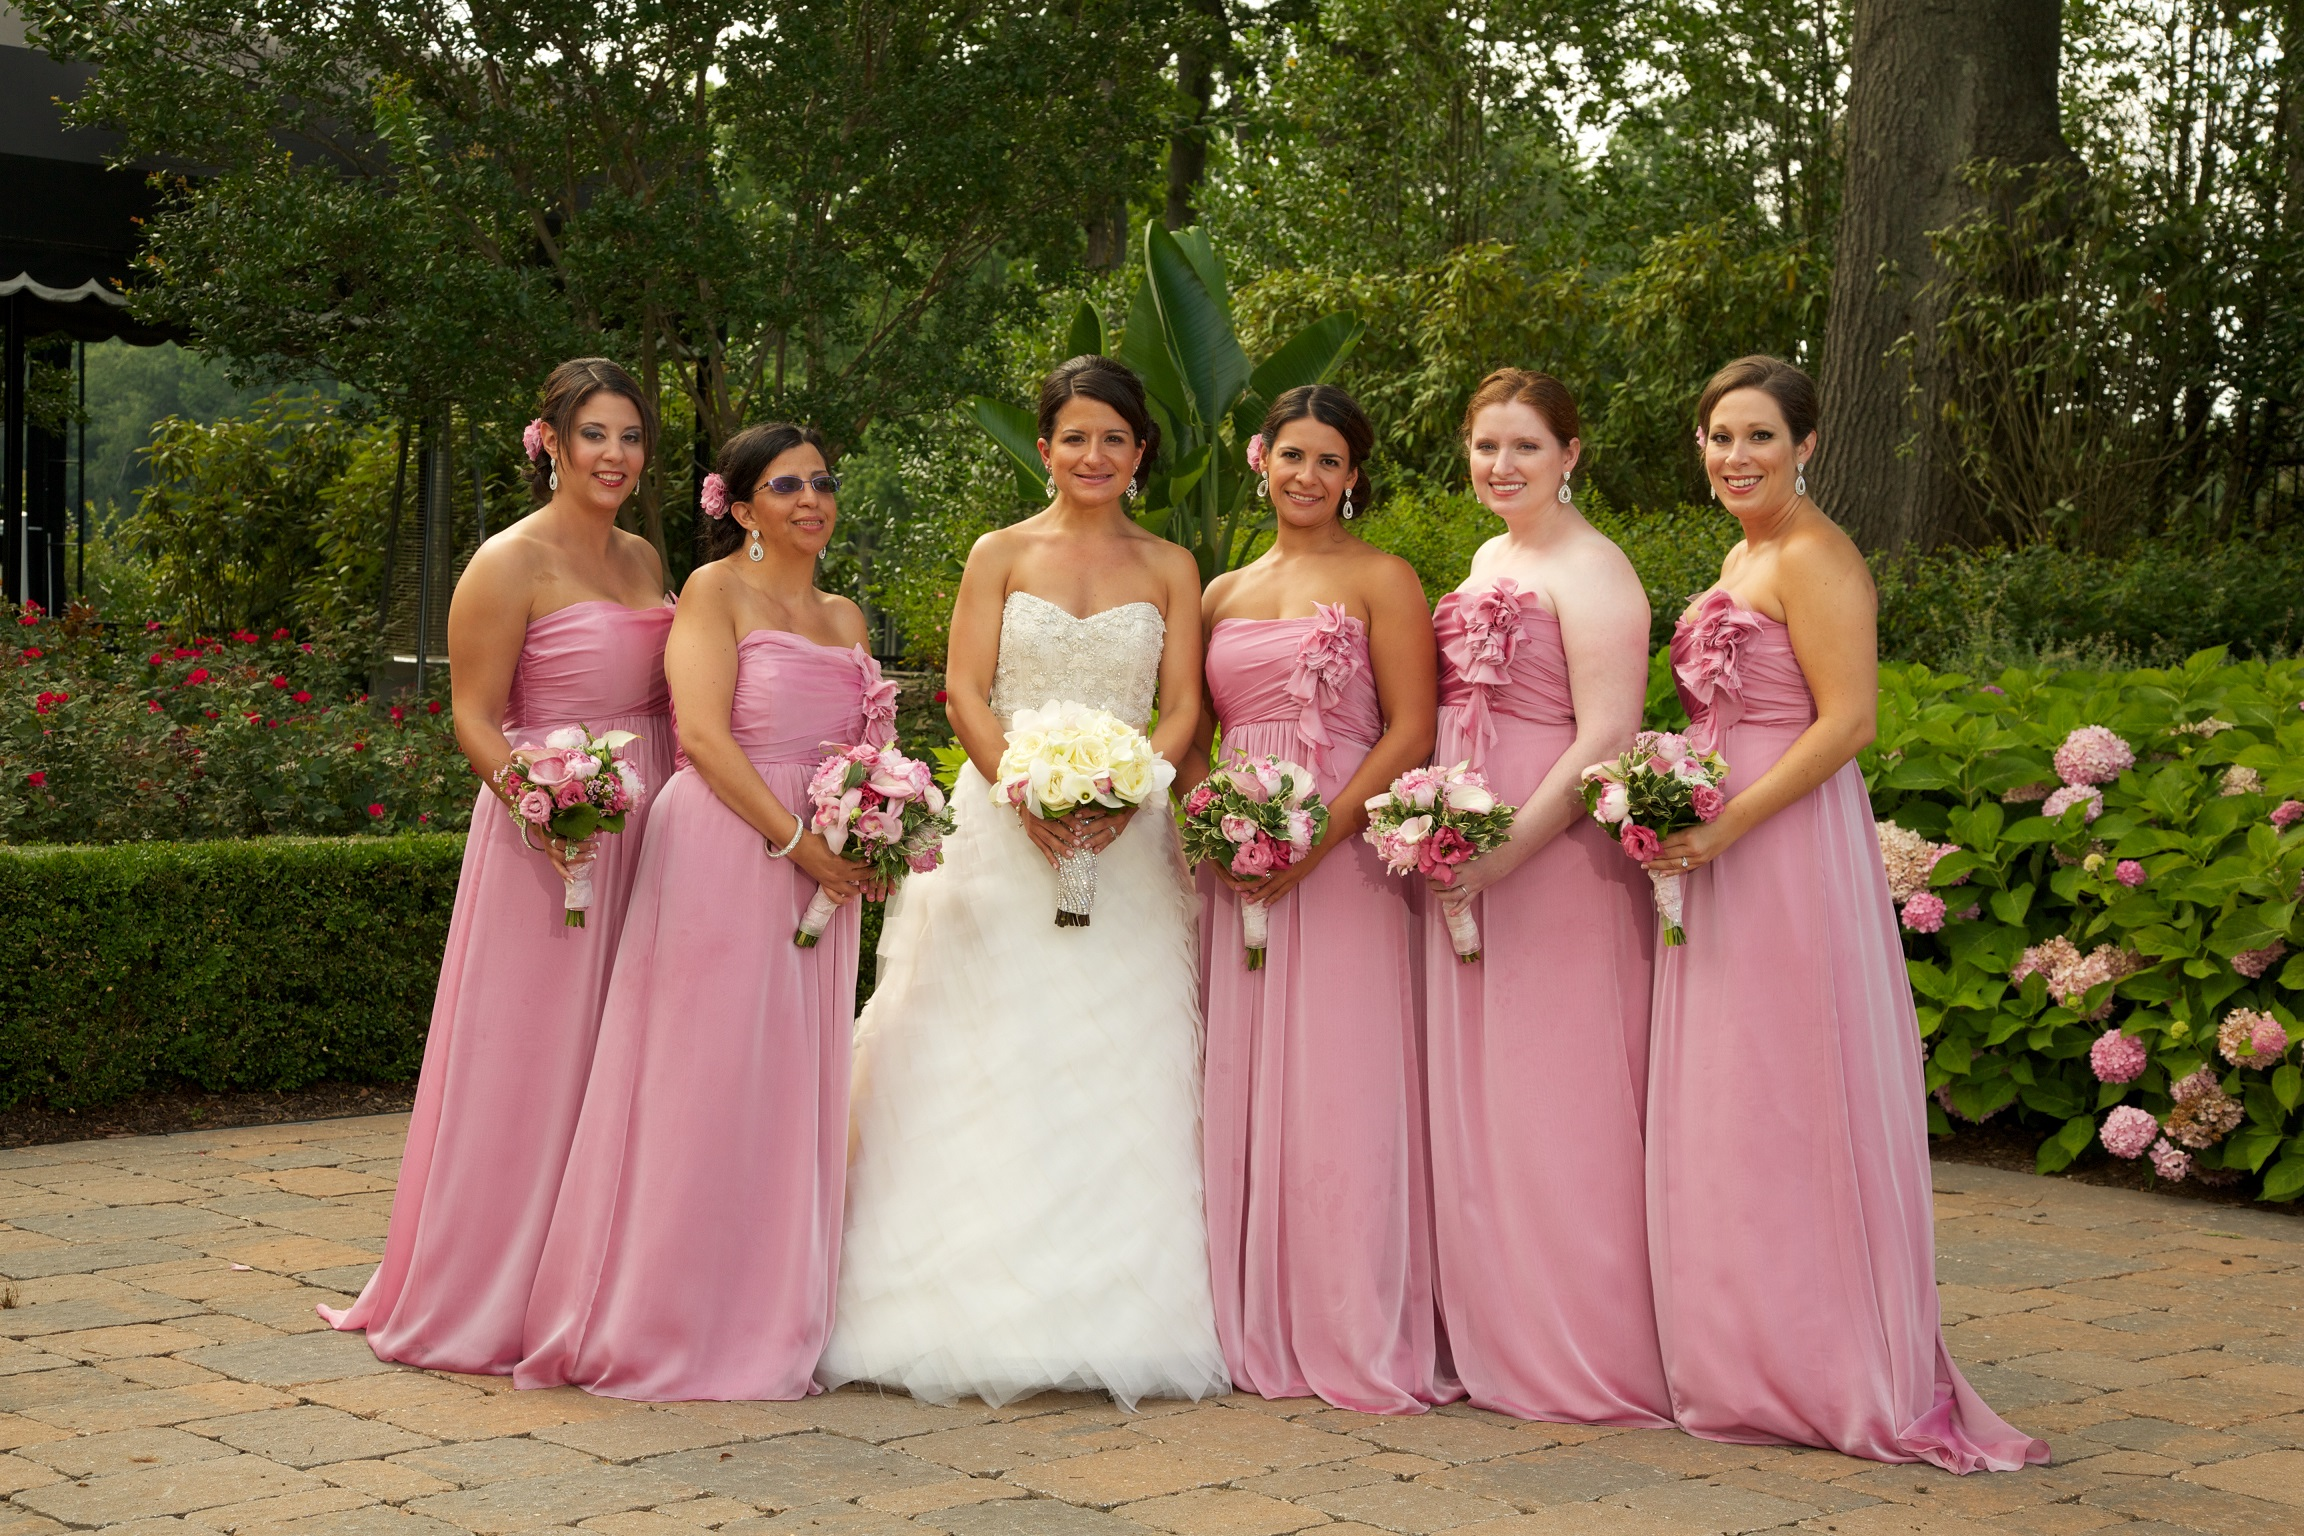 Brides with an odd number of bridesmaids, pose ideas